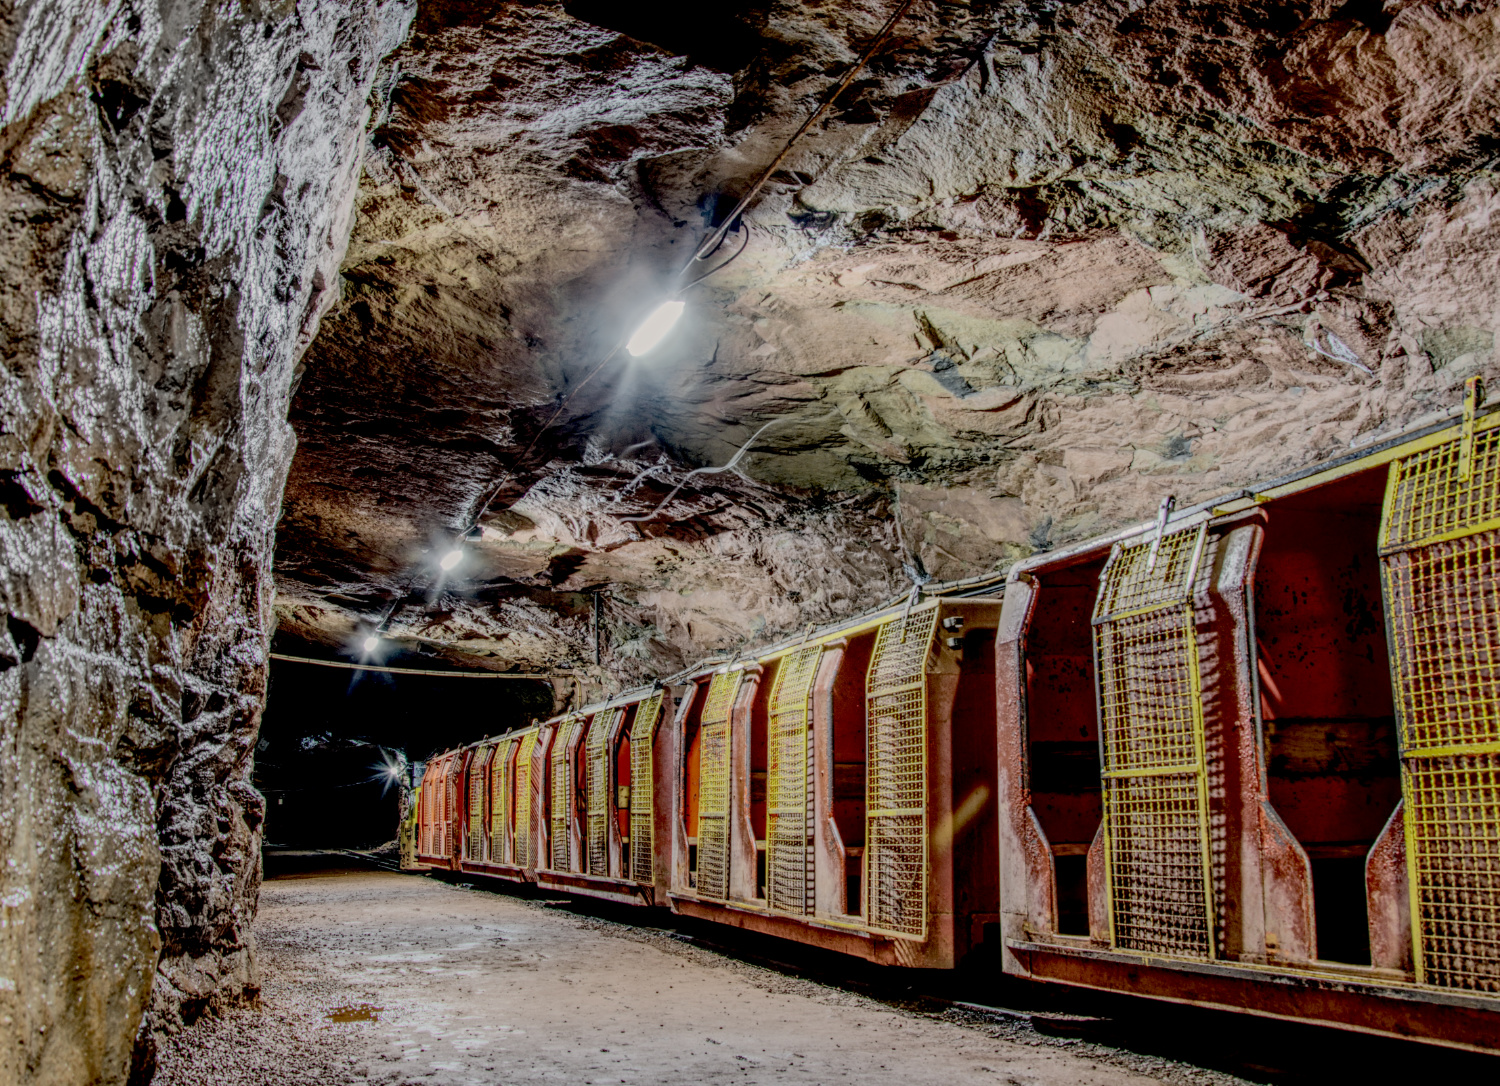 This train takes us deeper into the visitor mine Kleinenbremen